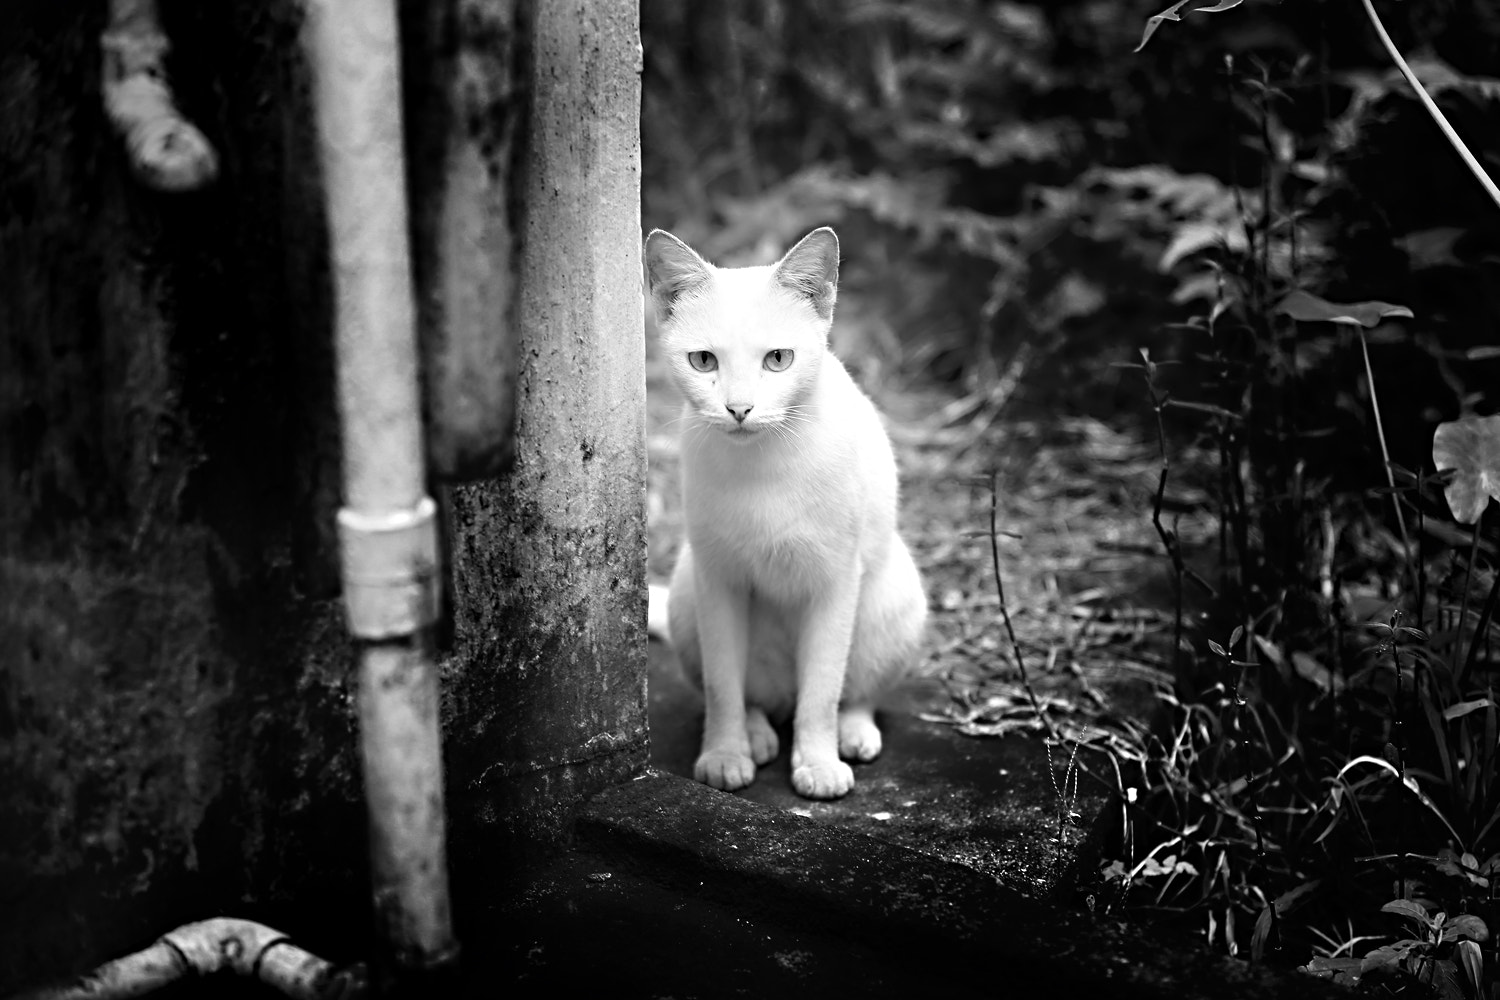 Photograph cat by KANNAN PHOTOGRAPHY on 500px